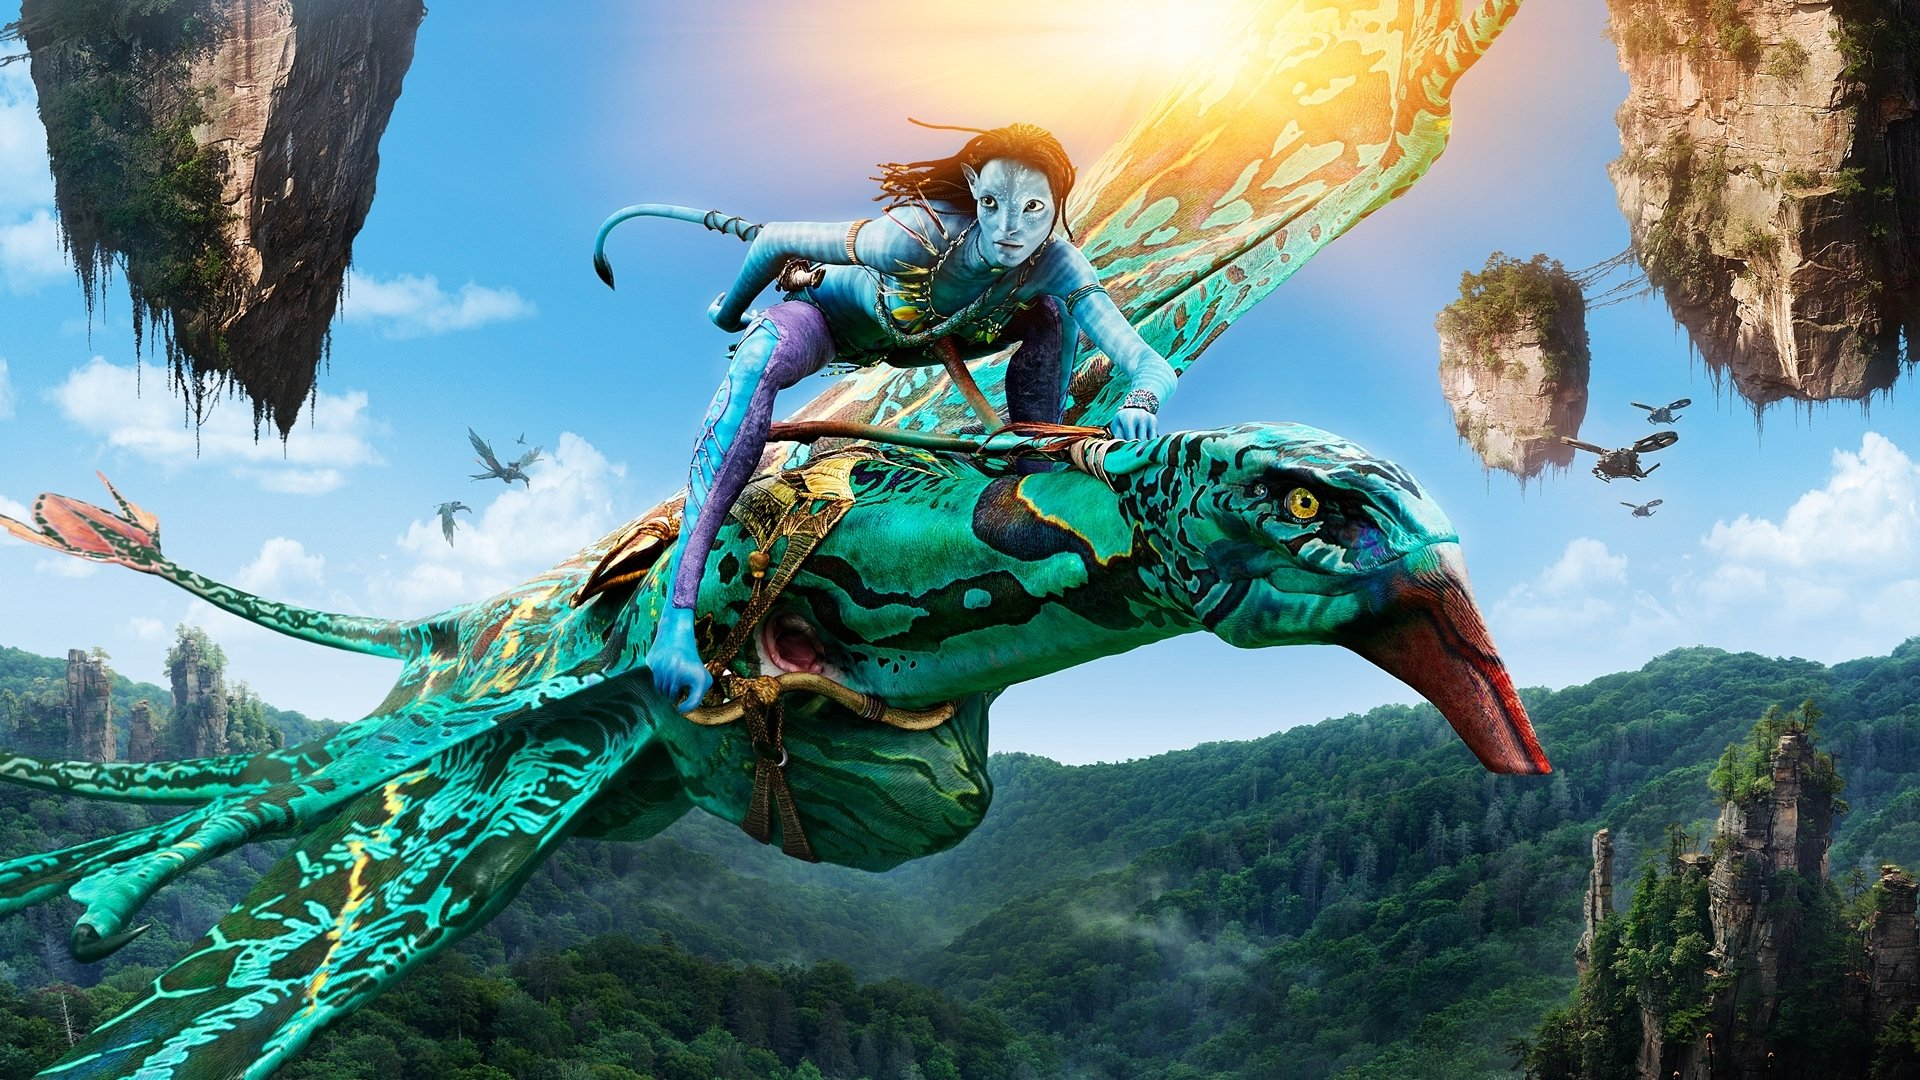 avatar full hd wallpaper and background image | 1920x1080 | id:906918